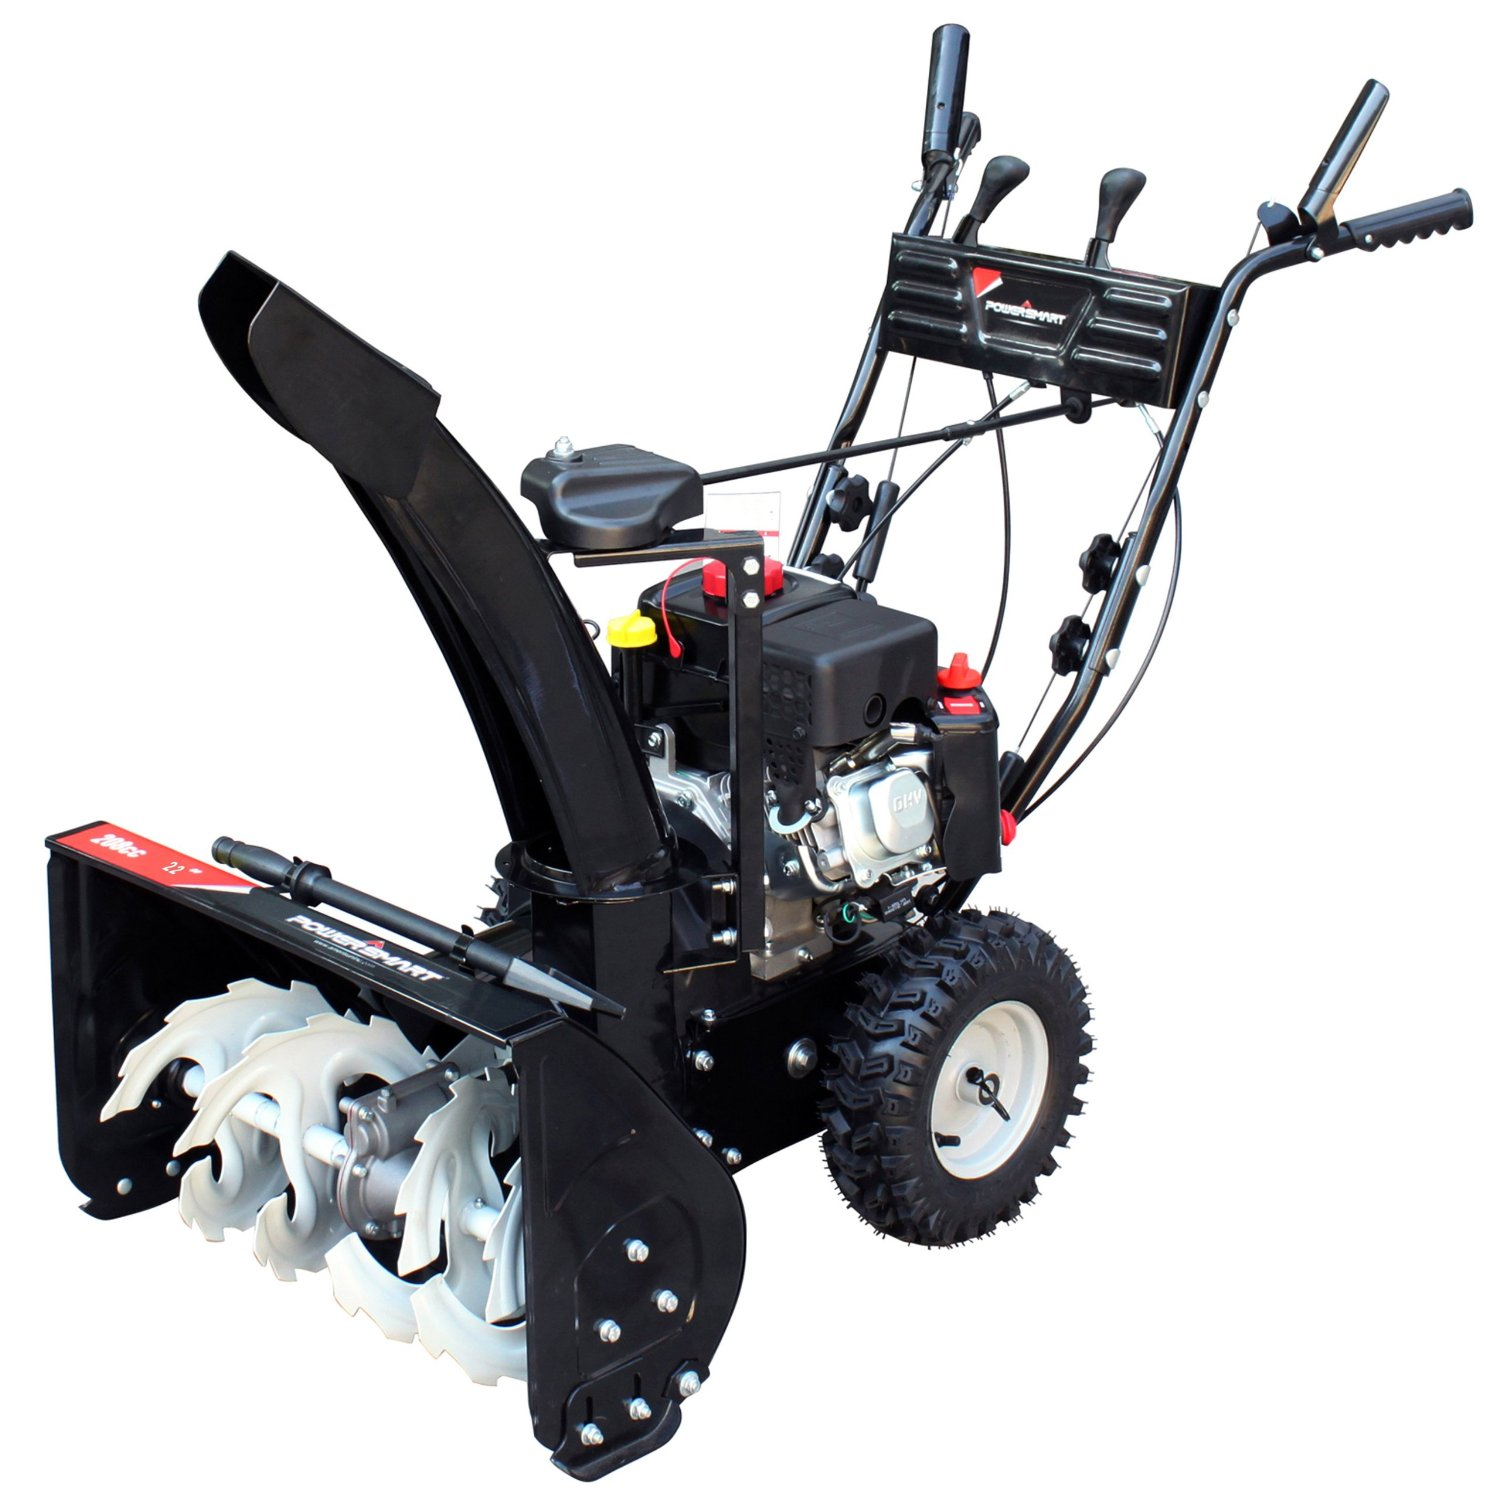 Menards Snow Blowers >> 2014 Power Smart Snow Devil Snow Blowers at Menards, Lowes, Sears and Amazon- Great Deal or ...